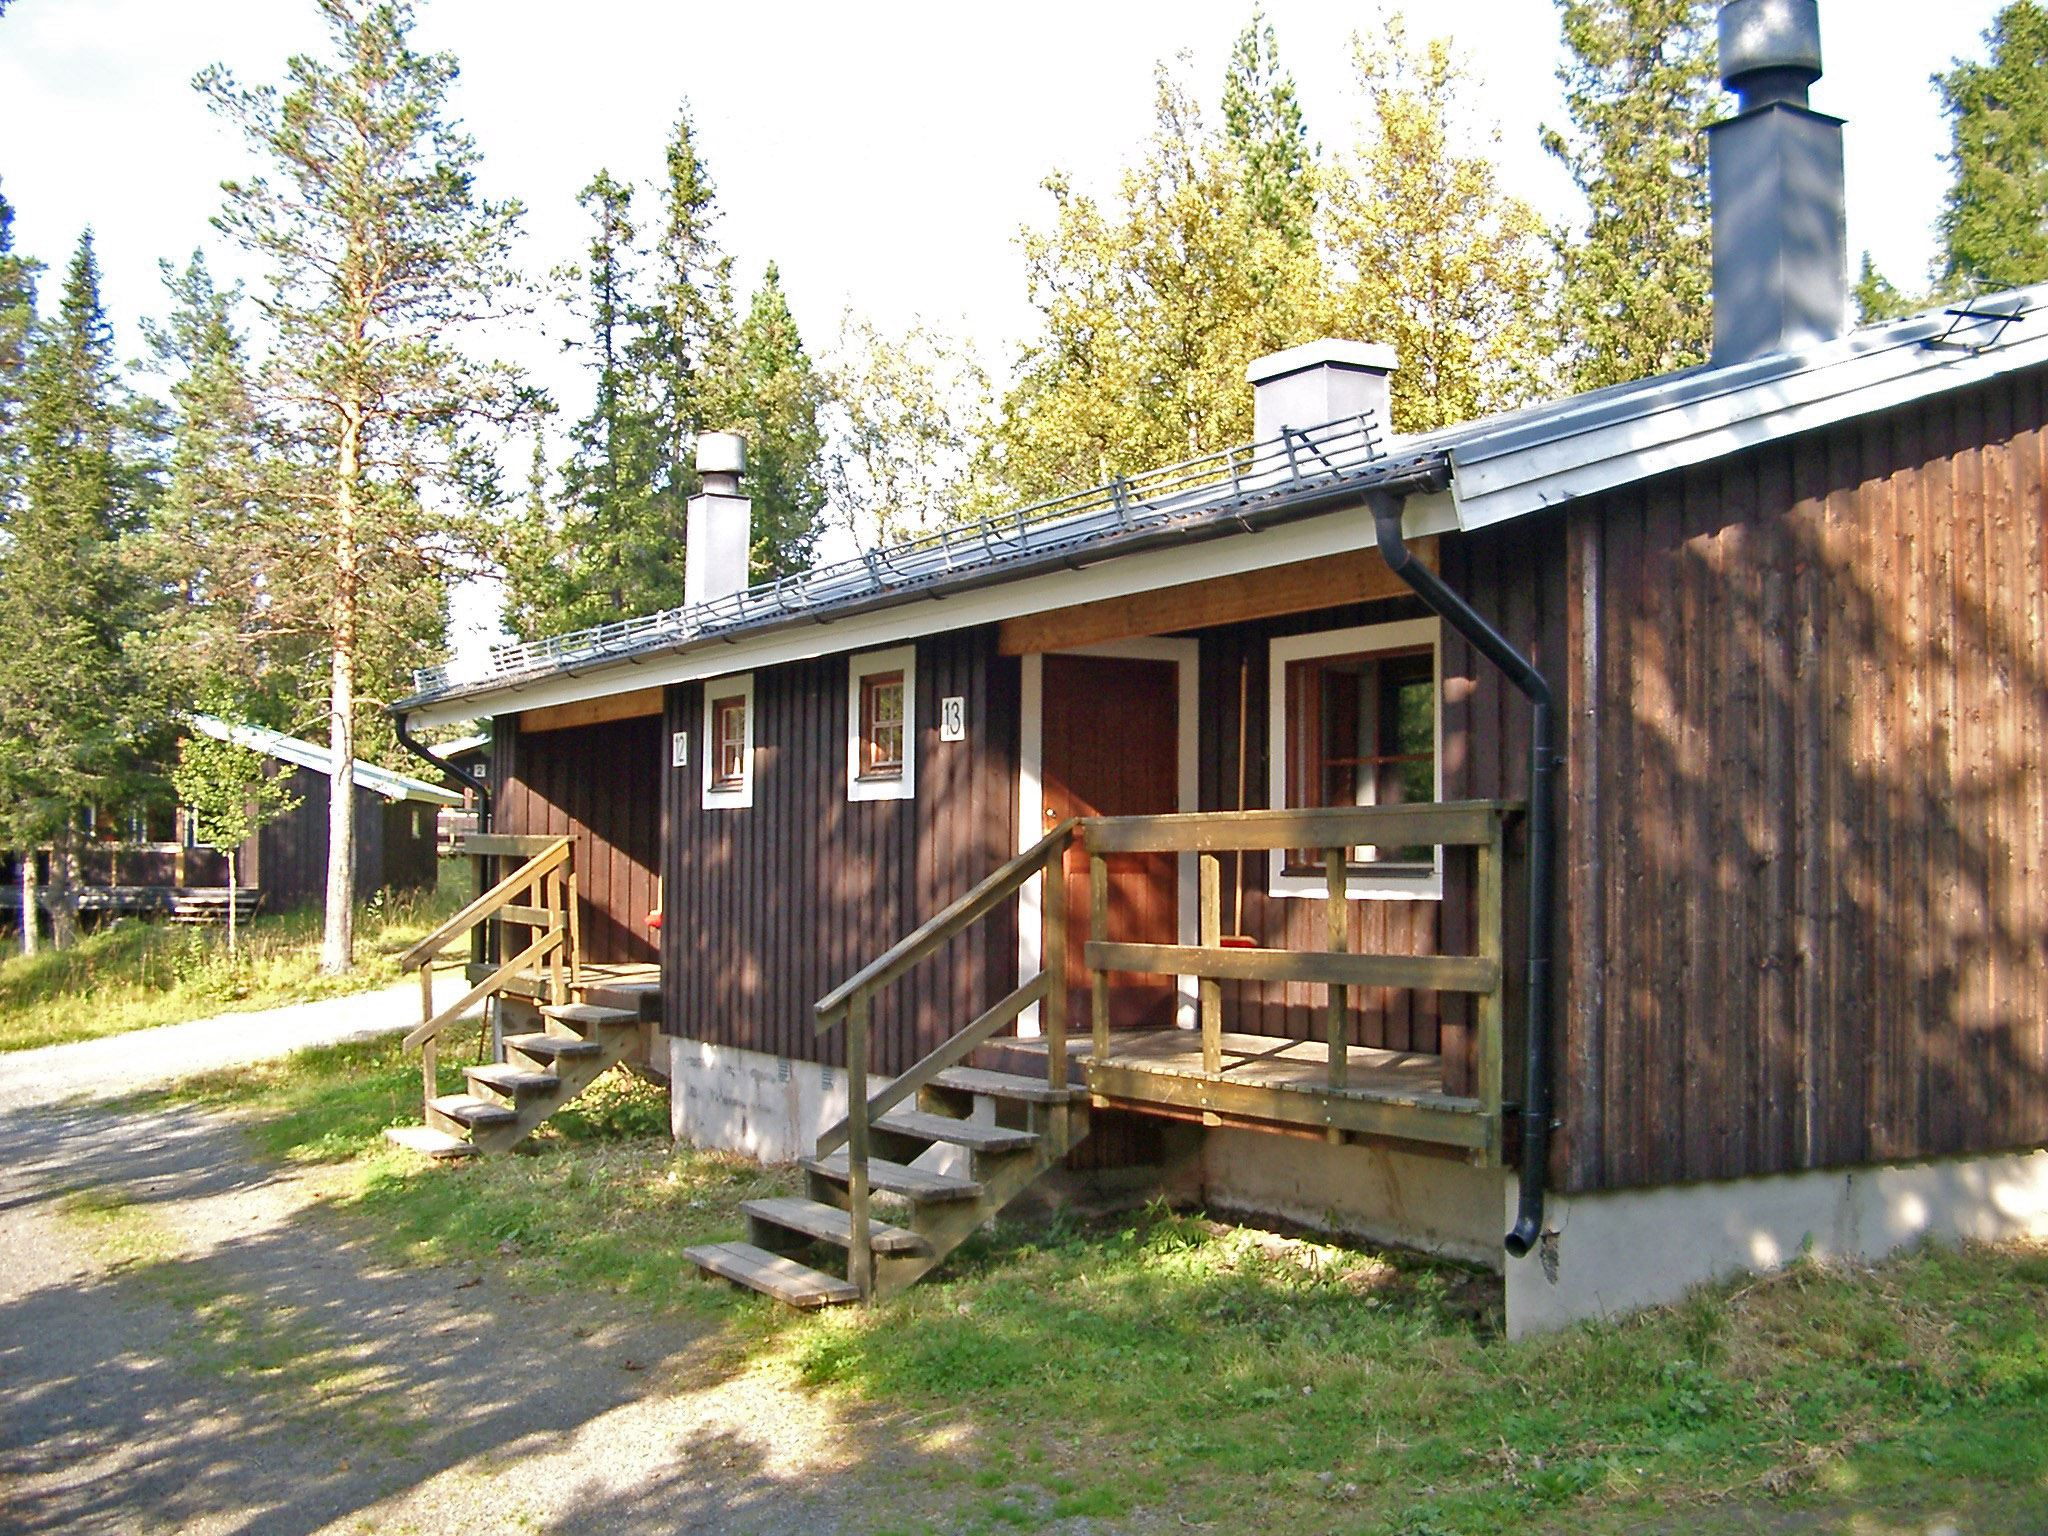 Höglekardalens Semesterby Cottages